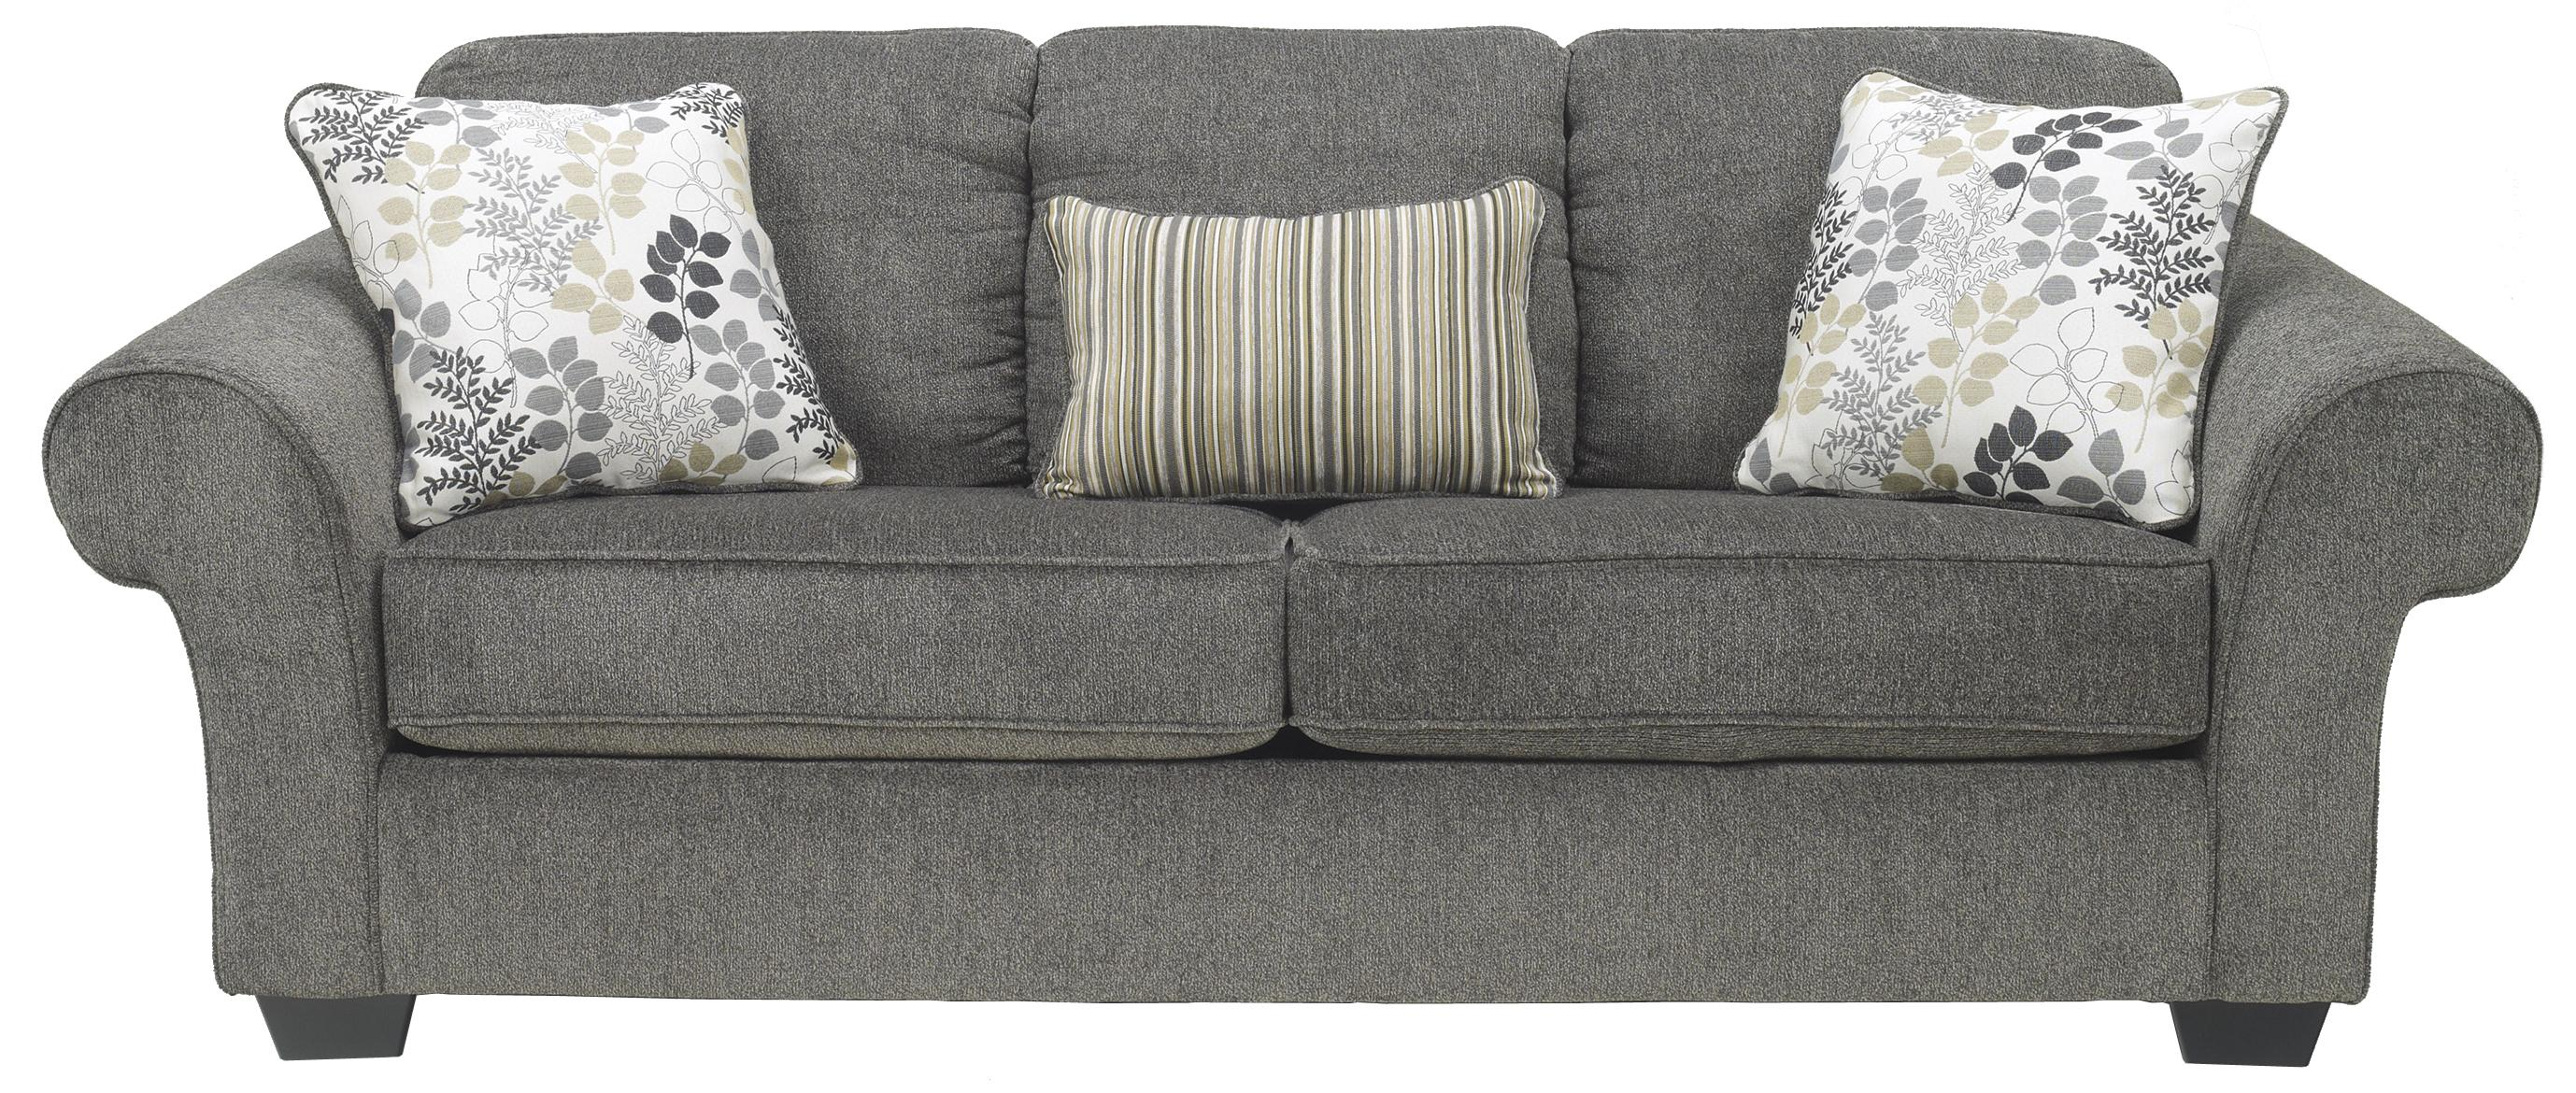 Queen Sofa Sleeper With Large Rolled Arms And 2 Seat Cushions